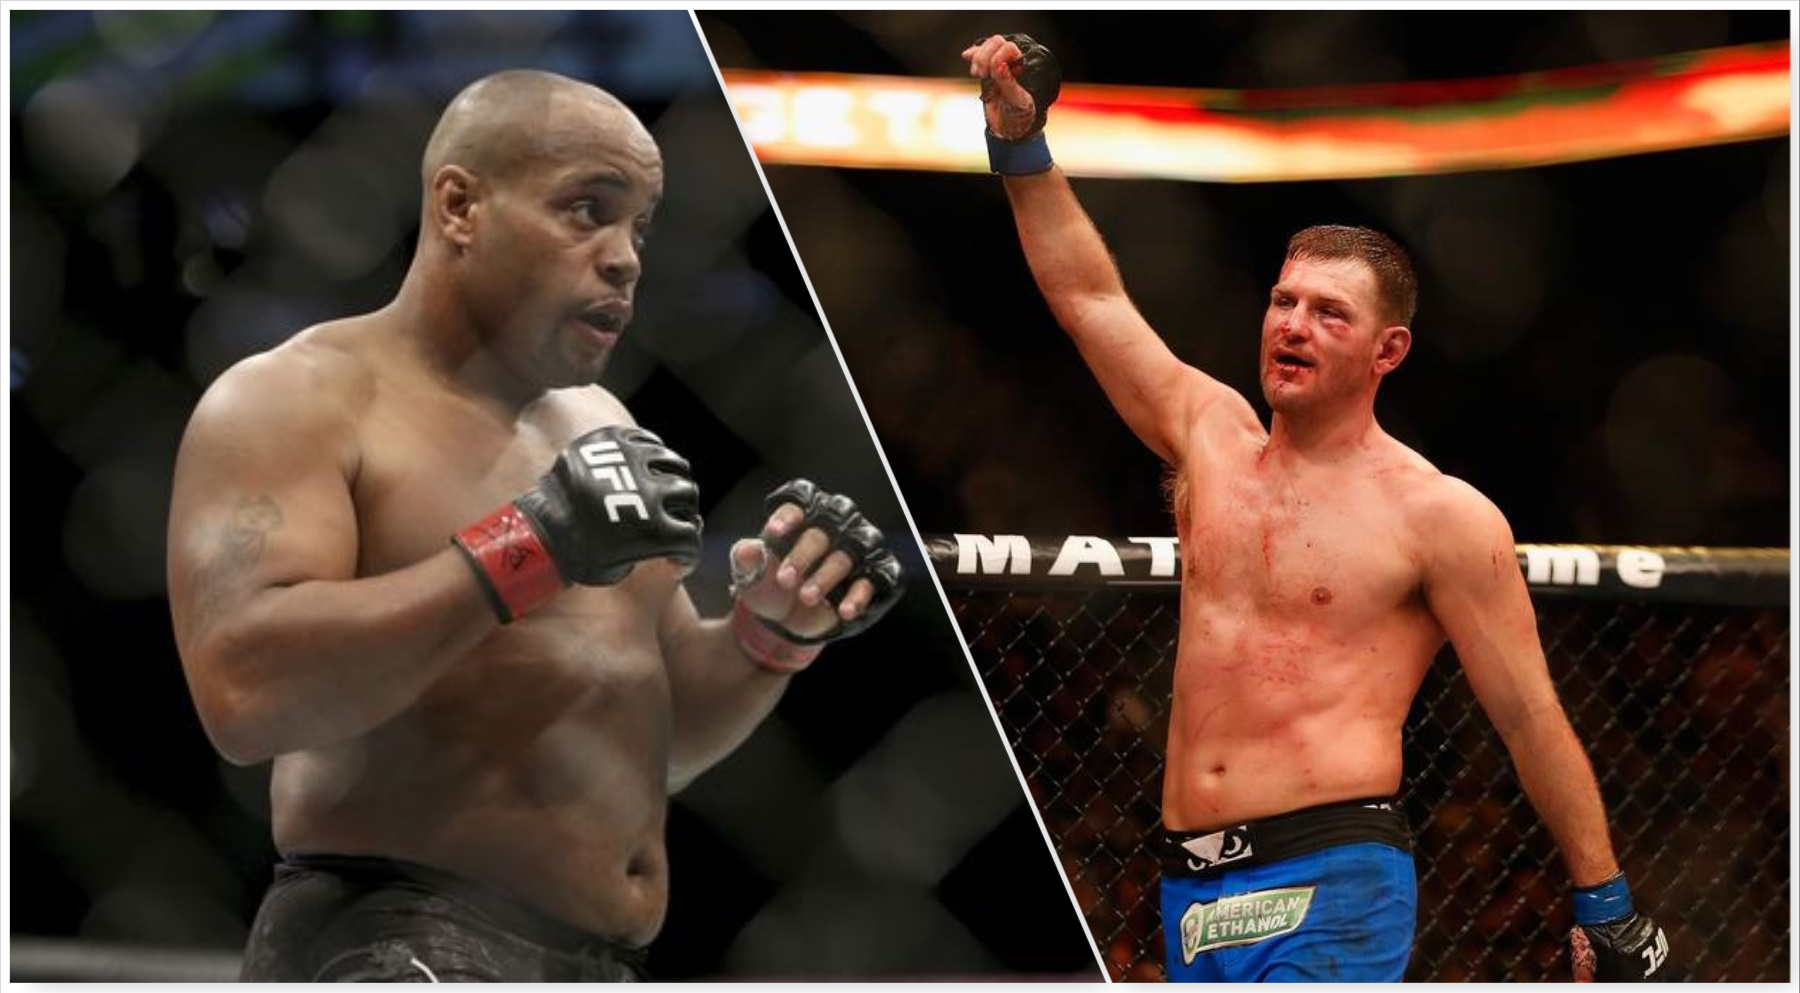 UFC 226 Miocic vs. Cormier - Live Results & Play By Play Updates -